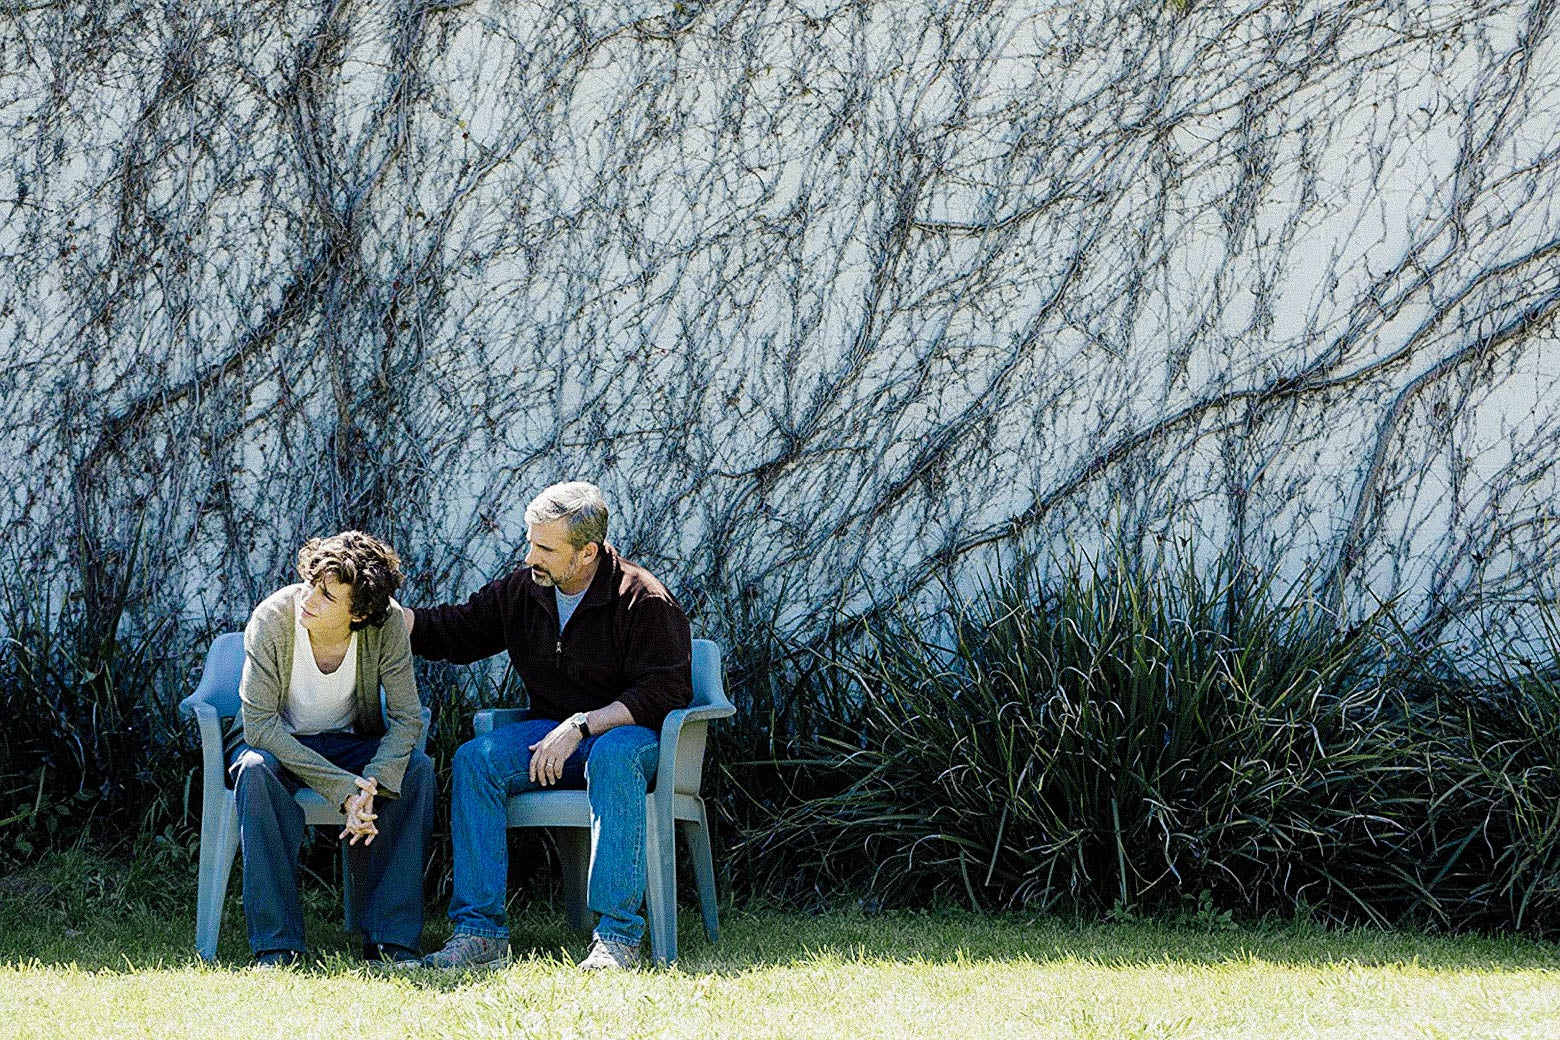 Steve Carell rests his hand on Timothée Chalamet's back in Beautiful Boy.